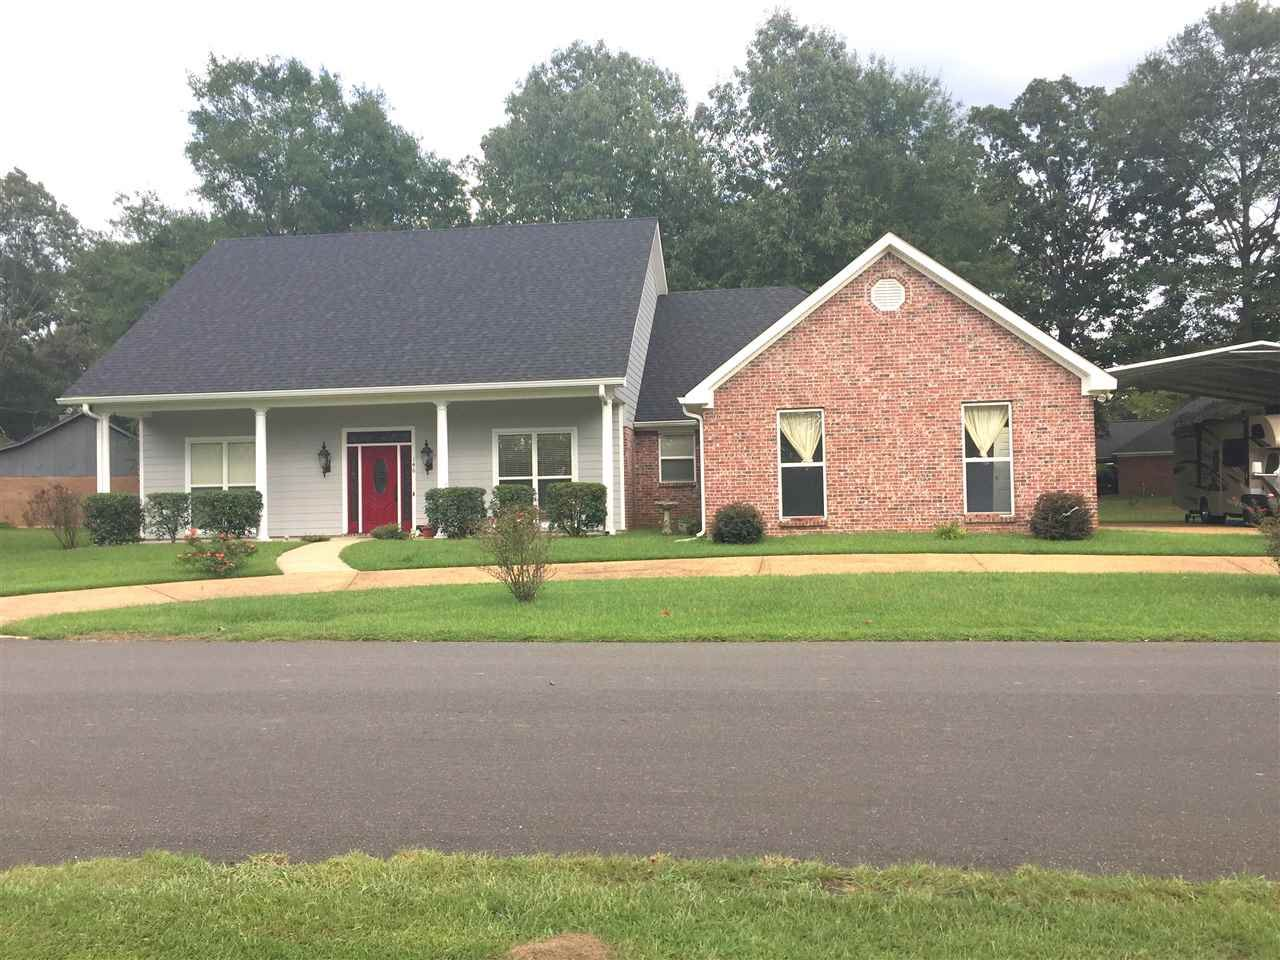 146 RICHMOND DR, Florence, MS 39073 - MLS#: 334405